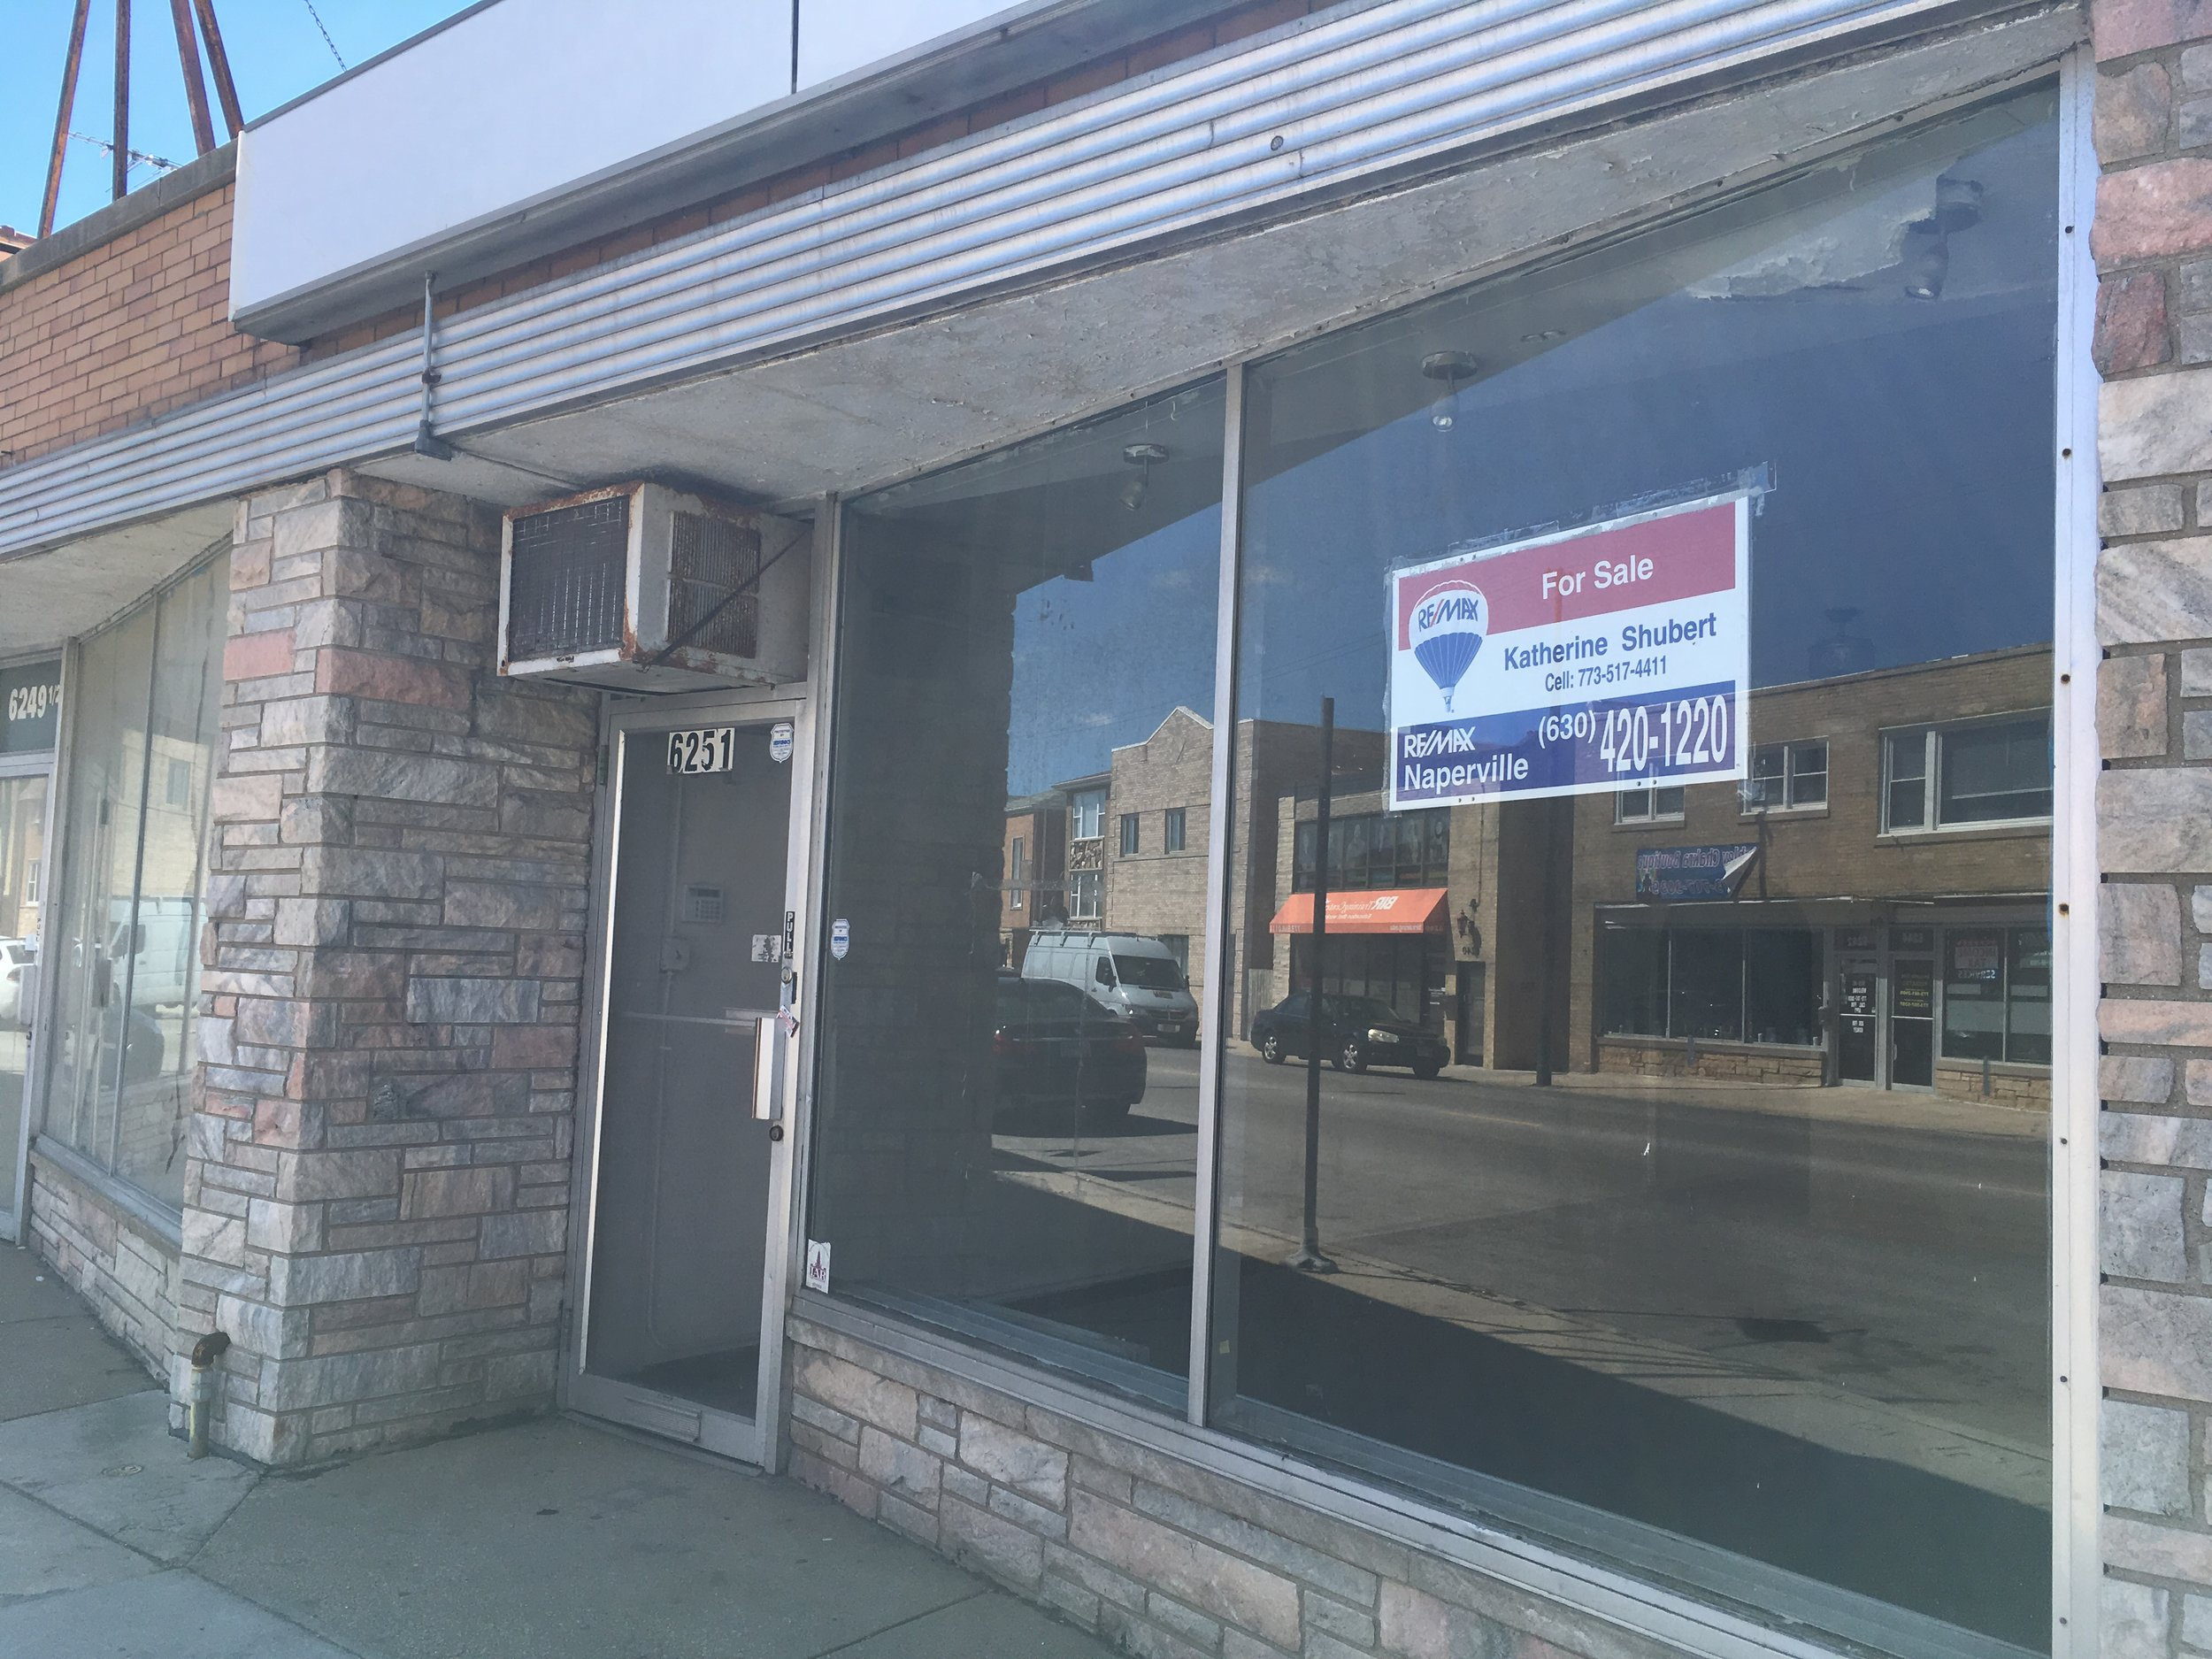 6251 W. Belmont Ave. |  Call  630-420-1220